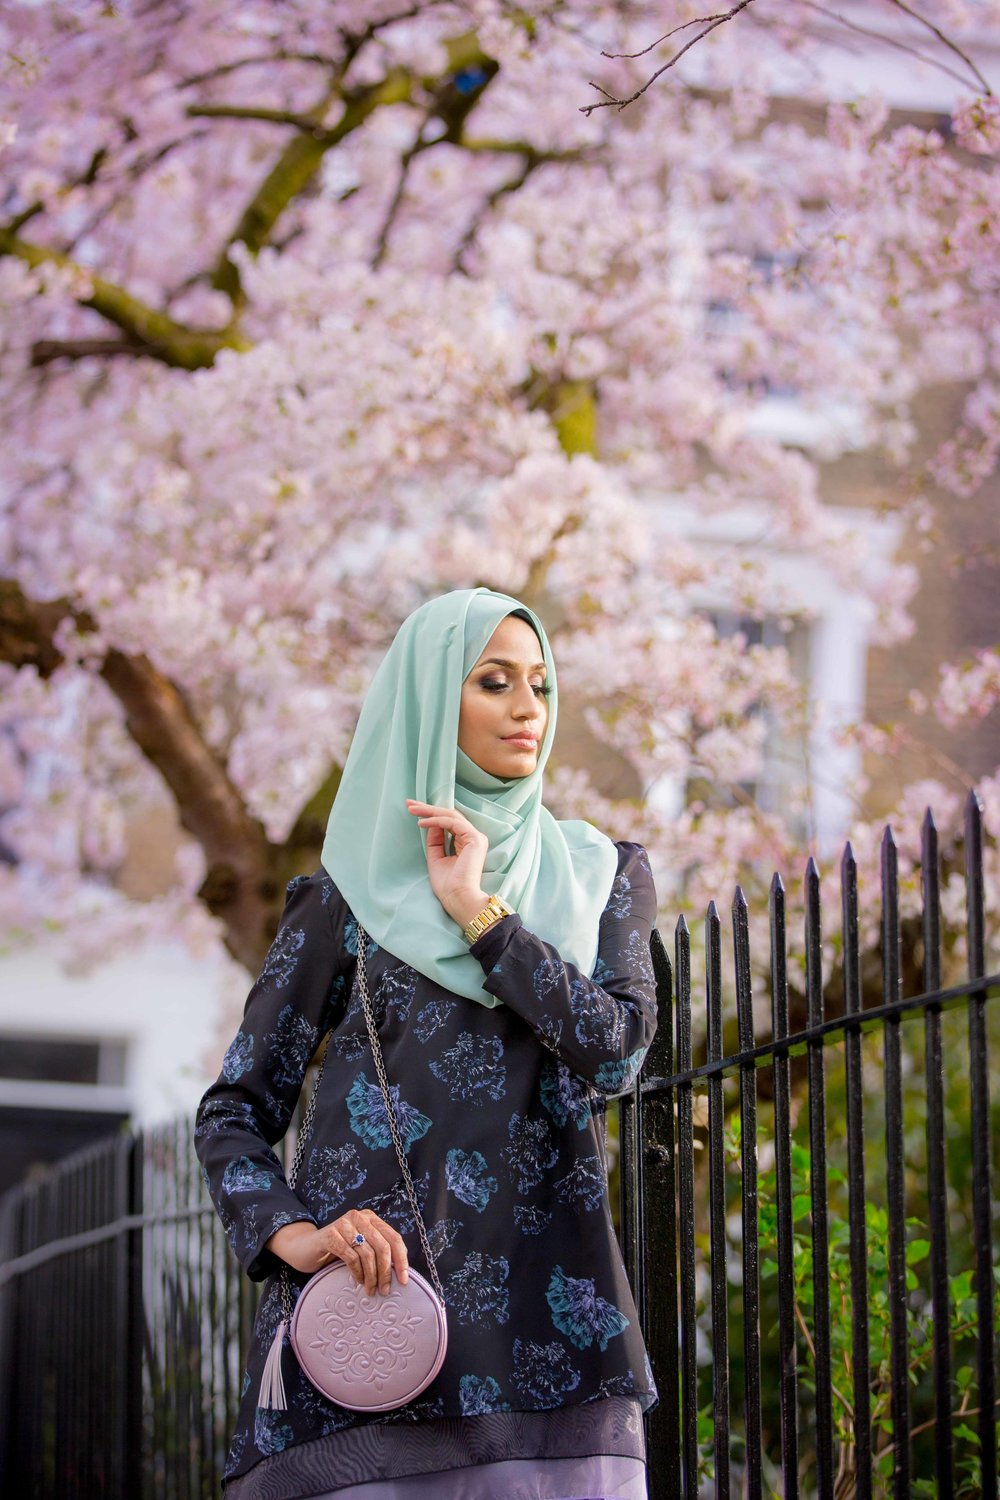 heute-elan-modest-street-aisha-rahman-fashion-photography-london-bristol-natalia-smith-photography-35.jpg